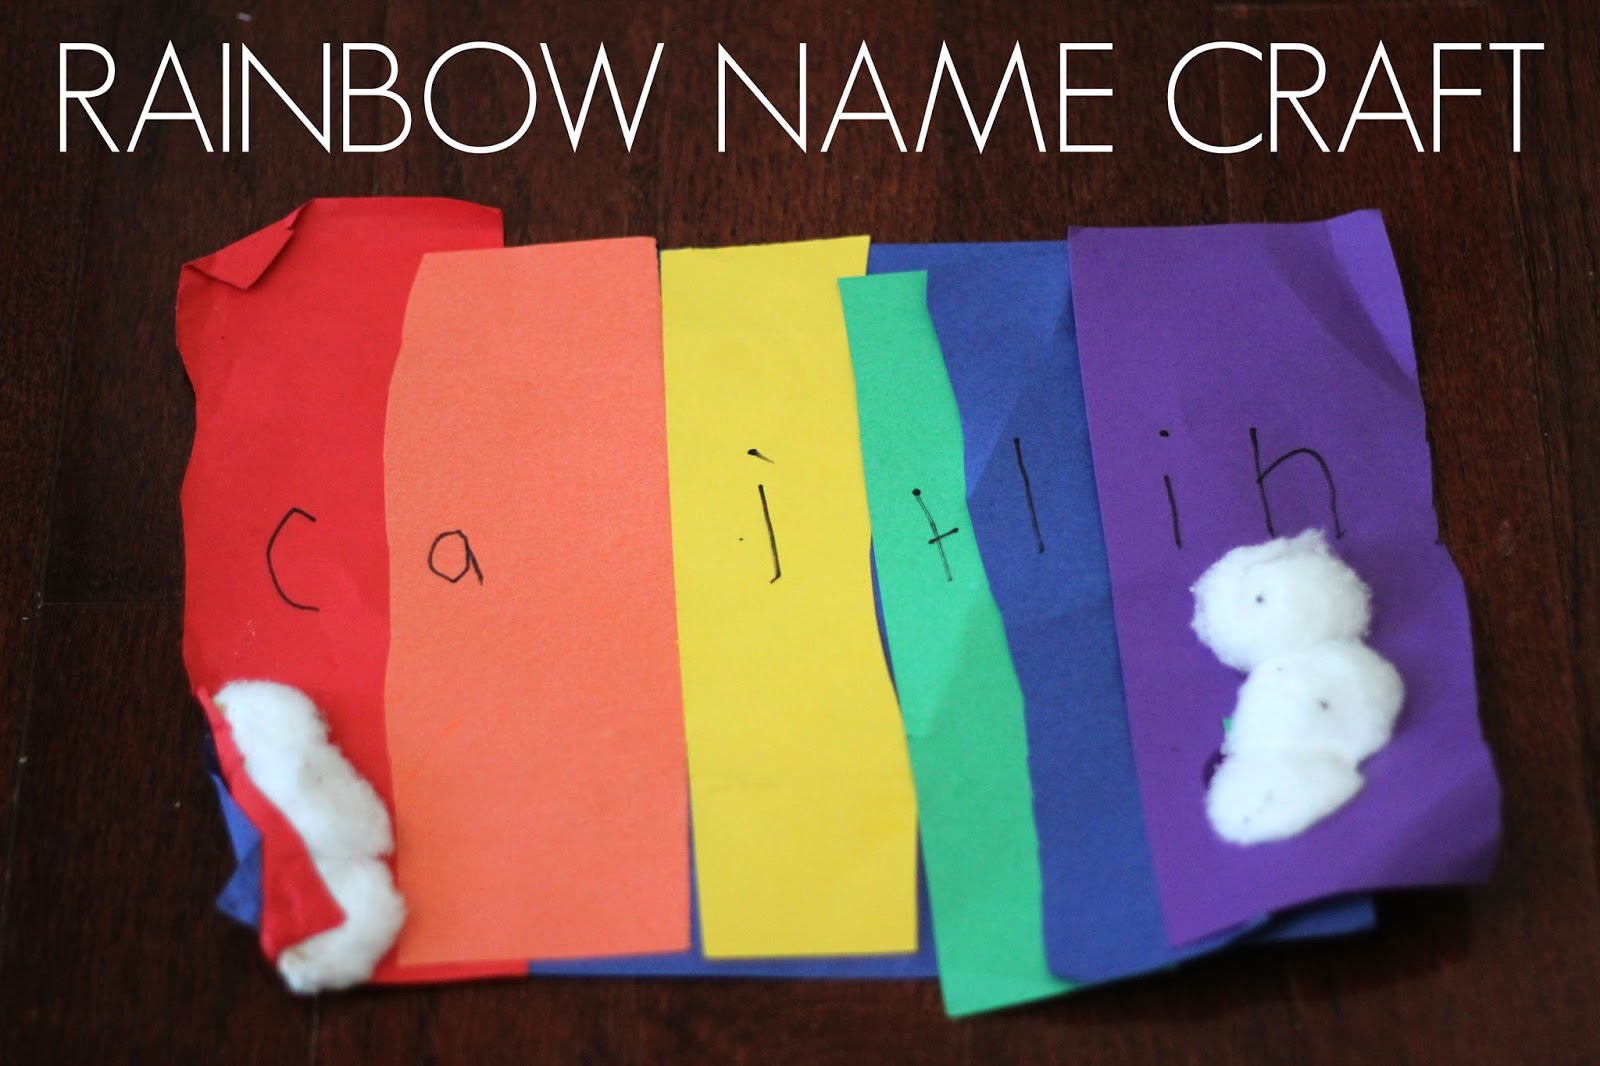 Today Im Sharing An Easy Peasy Rainbow Name Craft You Can Try With Your Kids